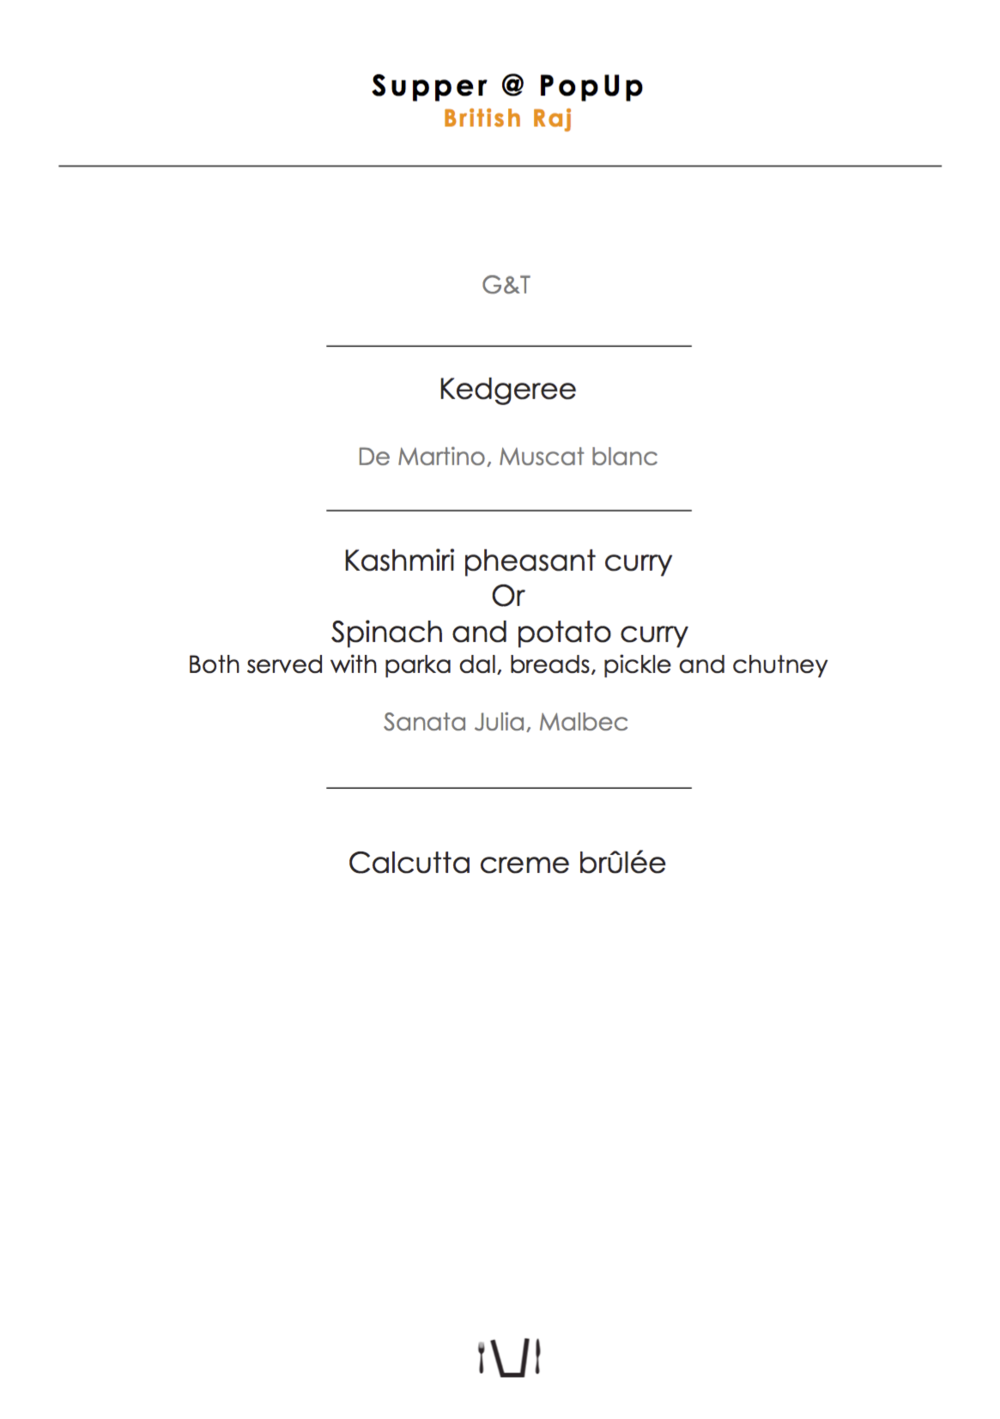 2015-12 supper popup printed table menu British Raj.png